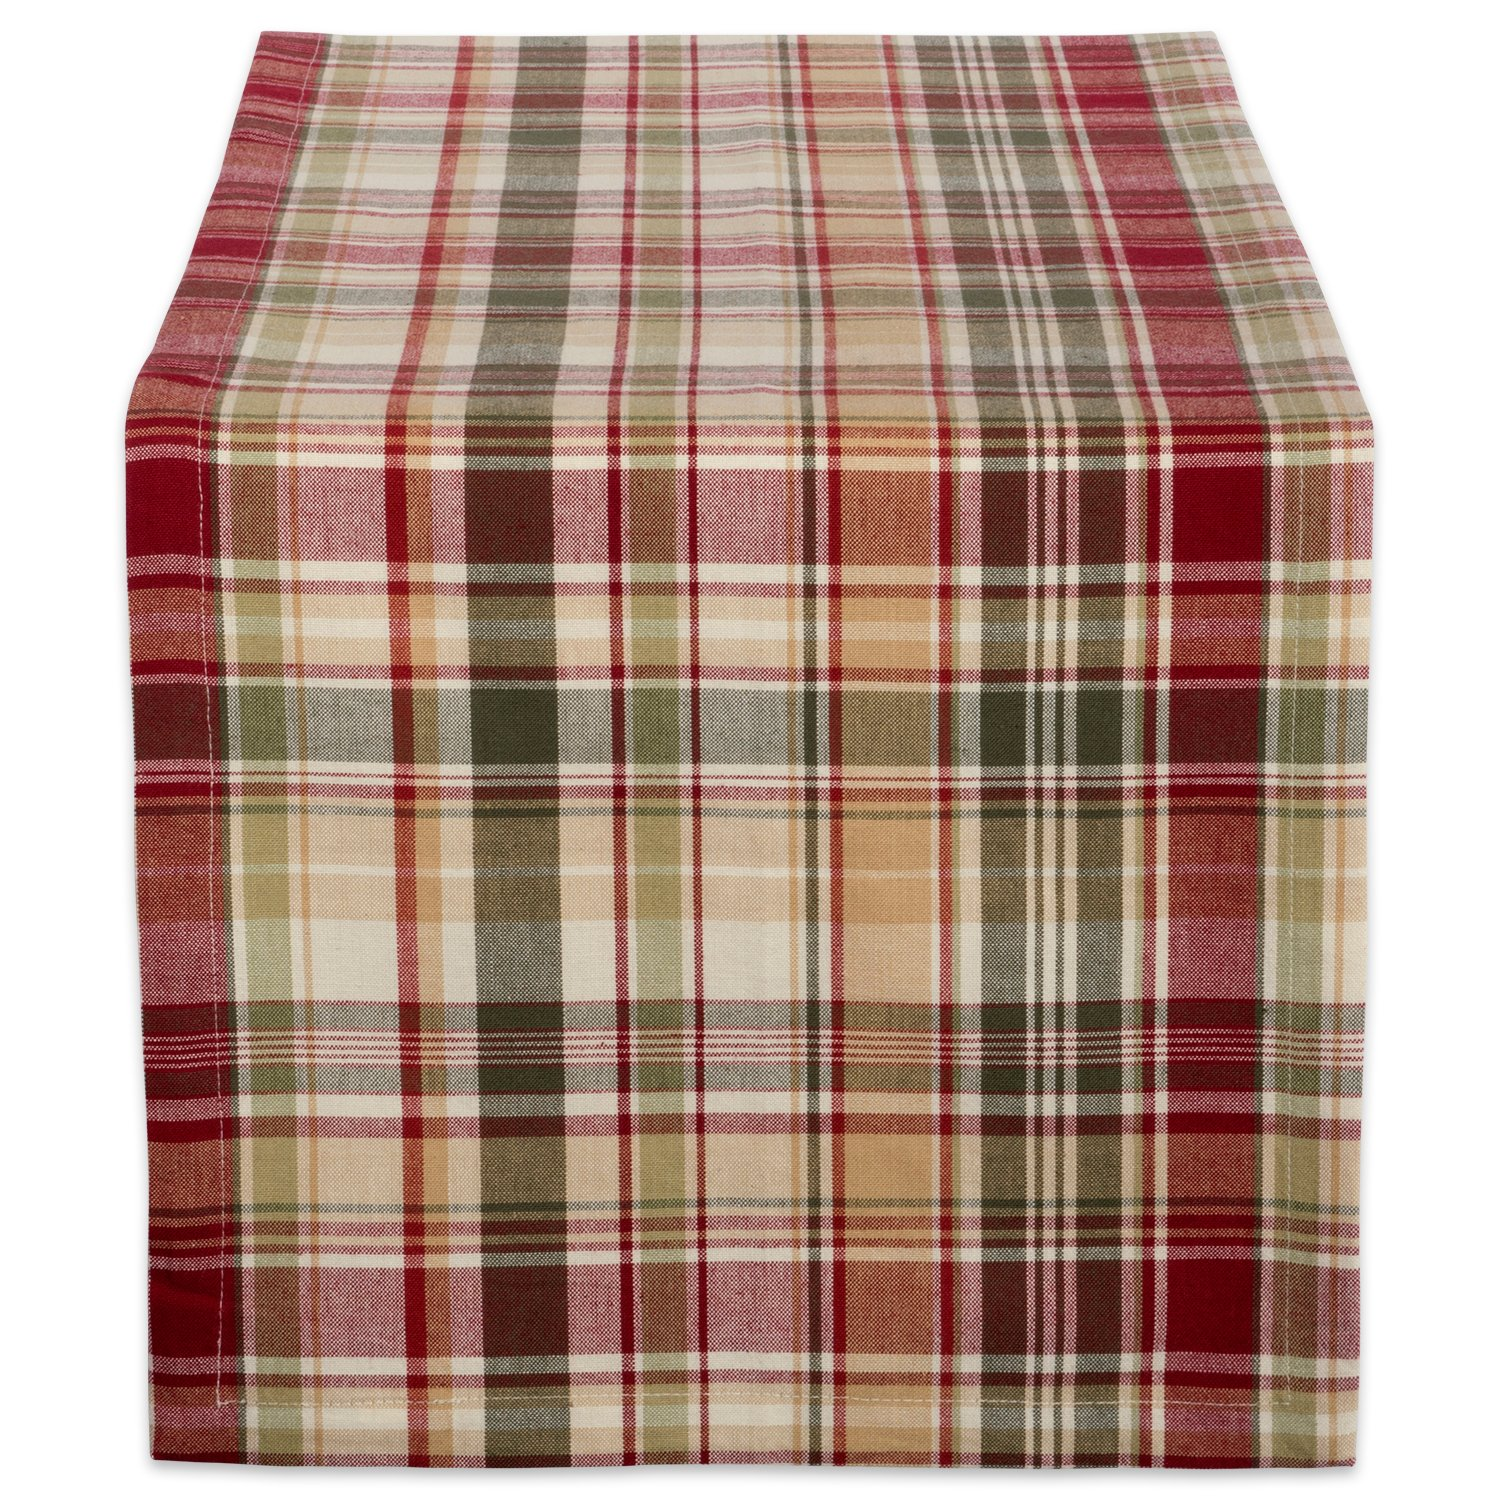 "Cabin Plaid 100% Cotton Table Runner (14x72"")"